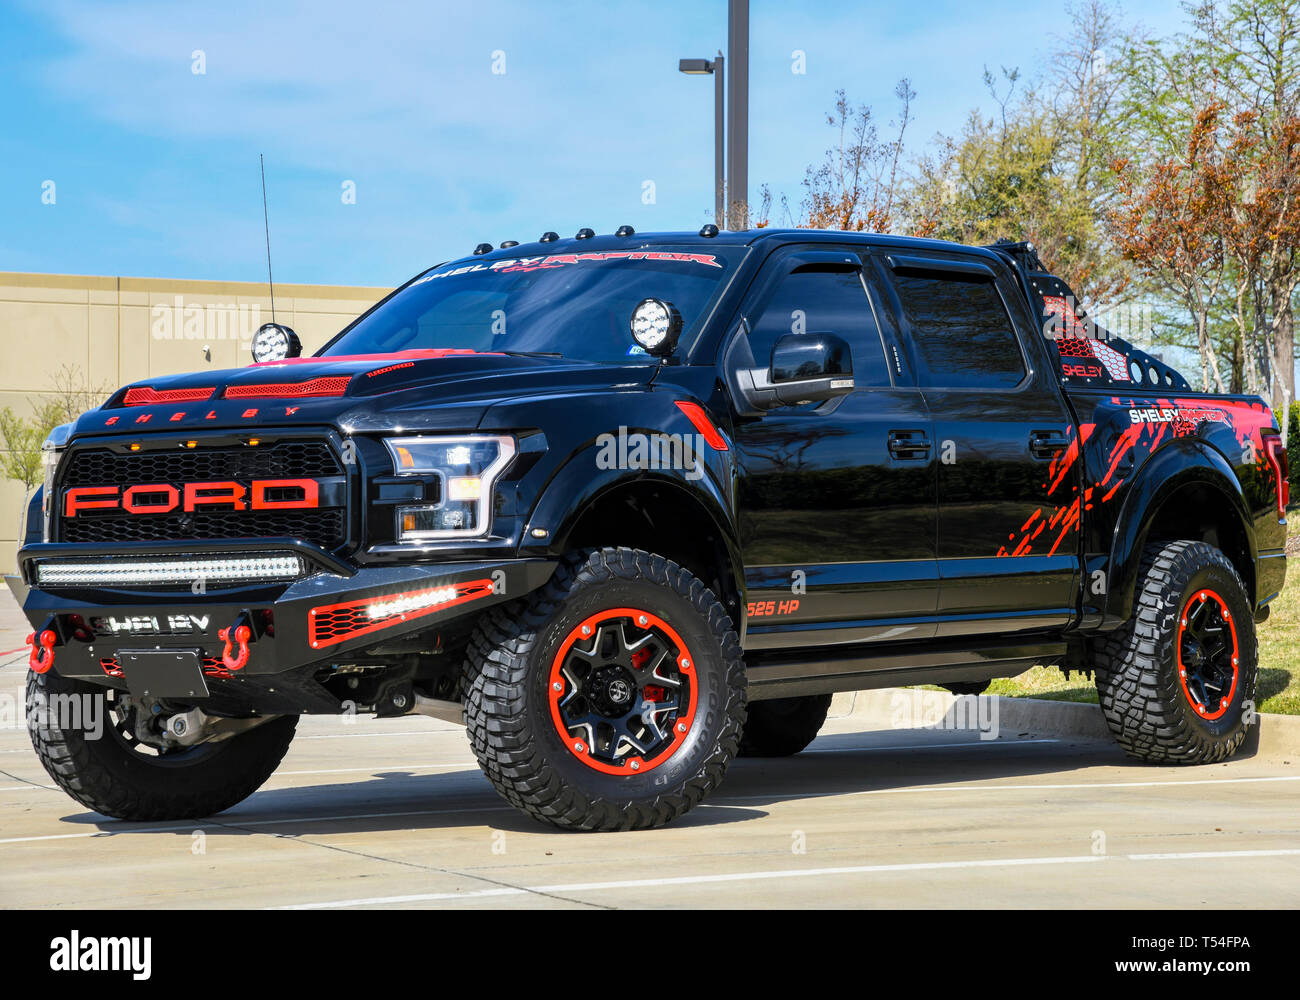 https www alamy com april 20 2019 2018 ford f 150 shelby raptor baja 525hp turbo fox 3 2018 shelby baha raptor we have 7 pages of added shelby and upgrade options call for a copy sonny 972 523 9797 shelby baja raptor 117460 additional installed upgrades 15357 full ford and shelby warranty one owner certified baja option group 525 hp 610 fpt performance upgrade option list to ecoboost turbo shelby tuned performance exhaust dual intake baja hood fox 3 raptor stage 2 shock system 18 baja wheels bfg muds 35125018 with two full spares xl power steps front and rear shelby bumpers led led leds 40 cur image244118626 html